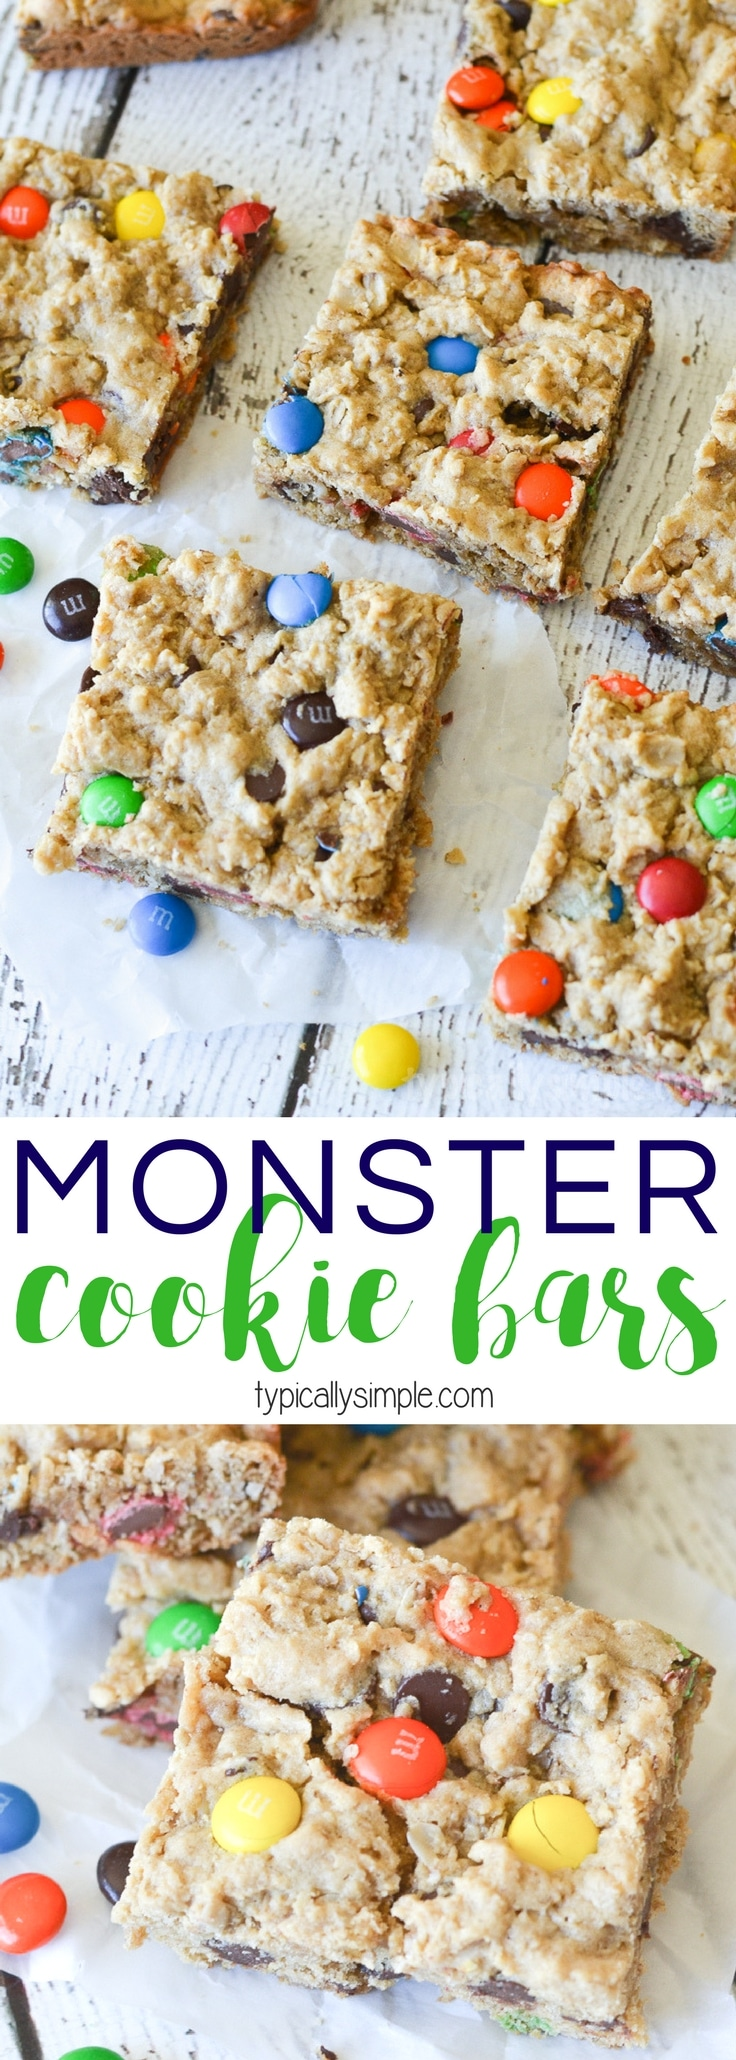 These Monster Cookie Bars are just as delicious as their cookie cousins - packed full of yummy chocolate chips and M&M's and just the right amount of soft and chewy texture!